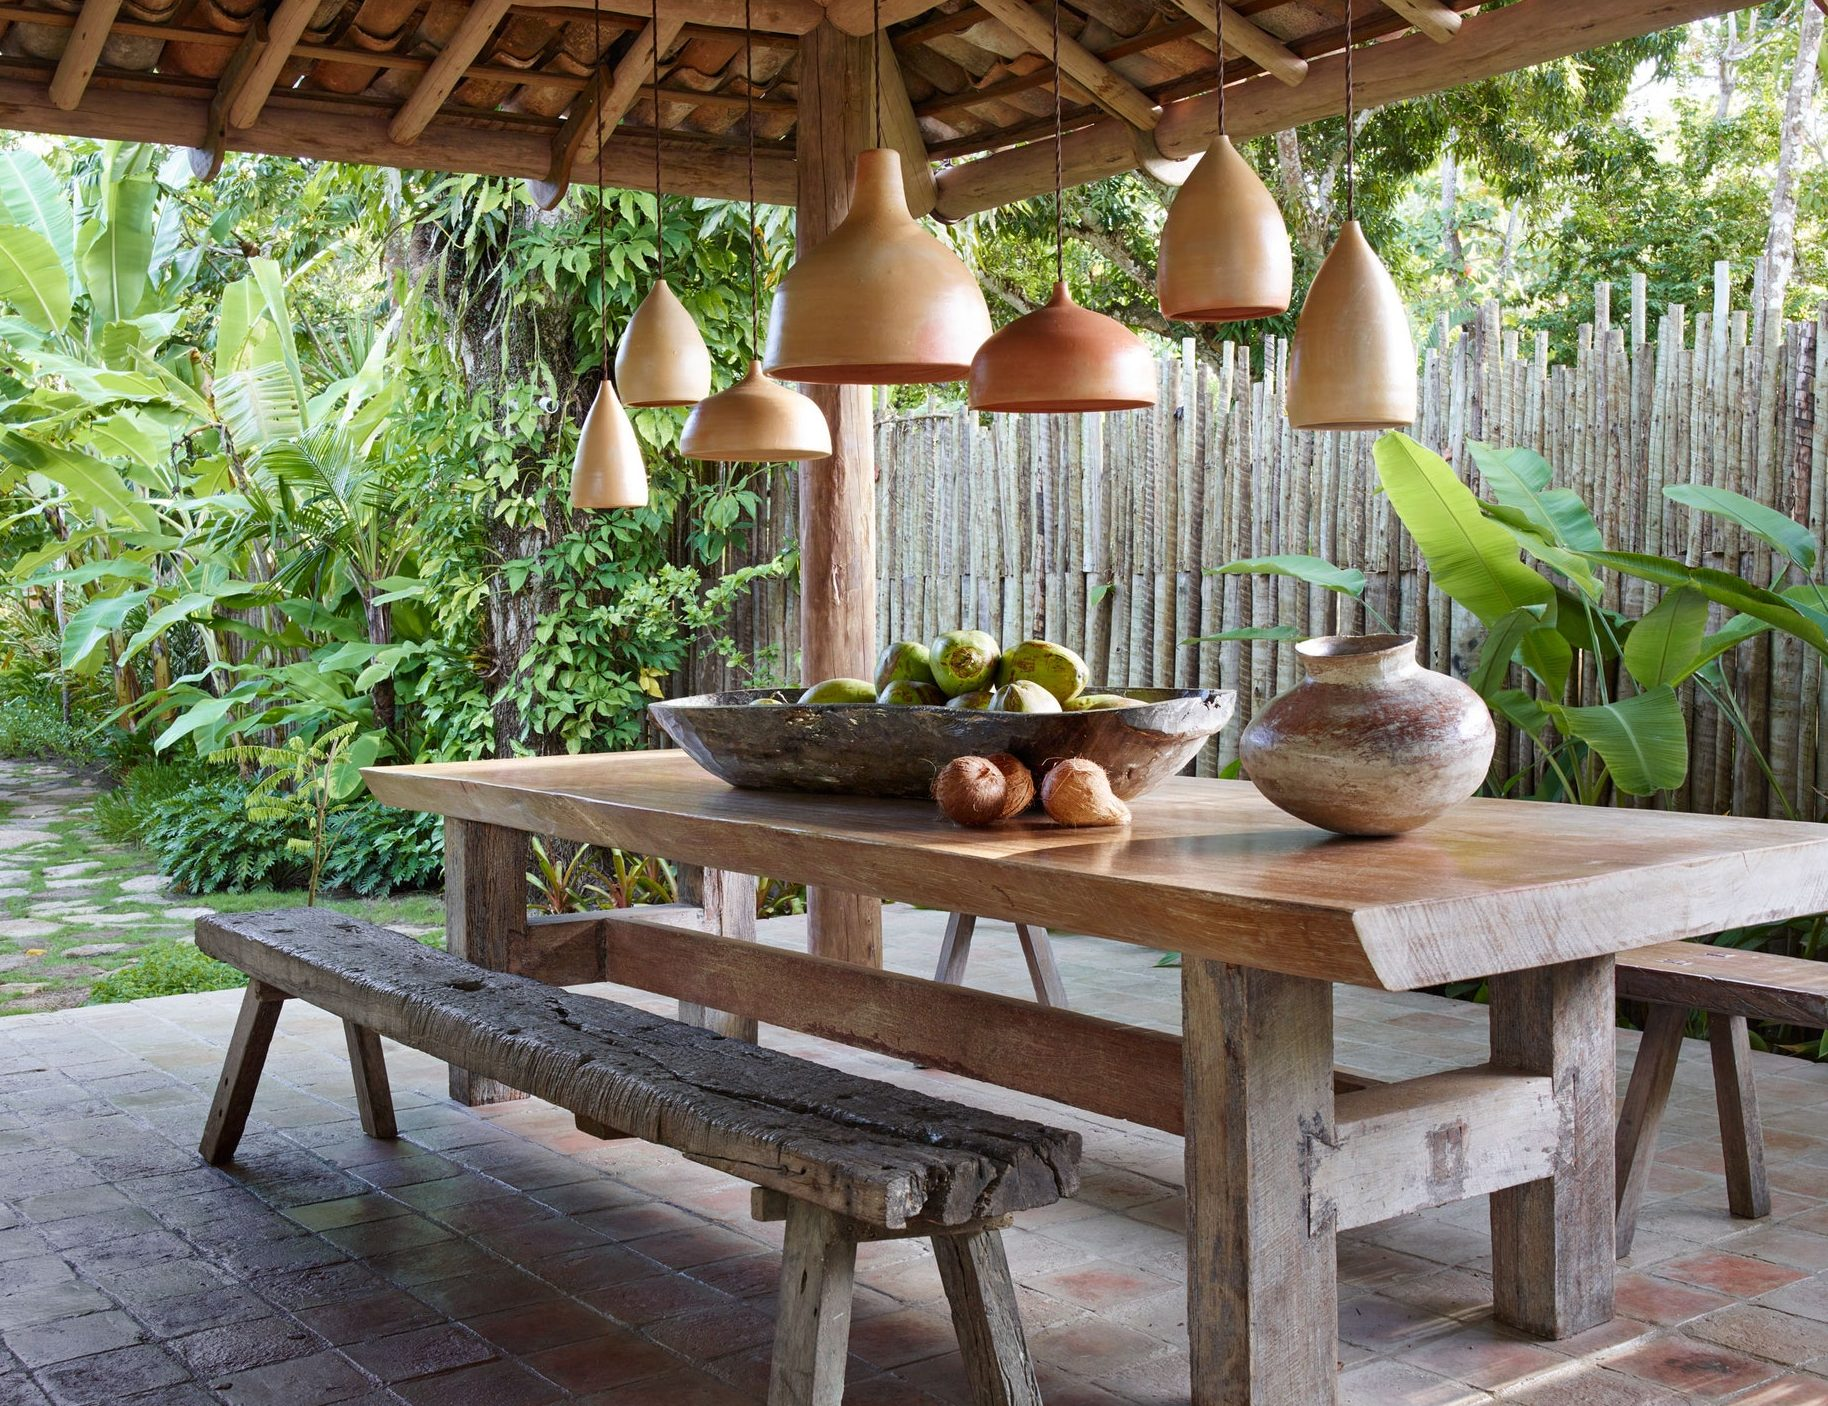 Covered cottage designed with terracotta furnishings